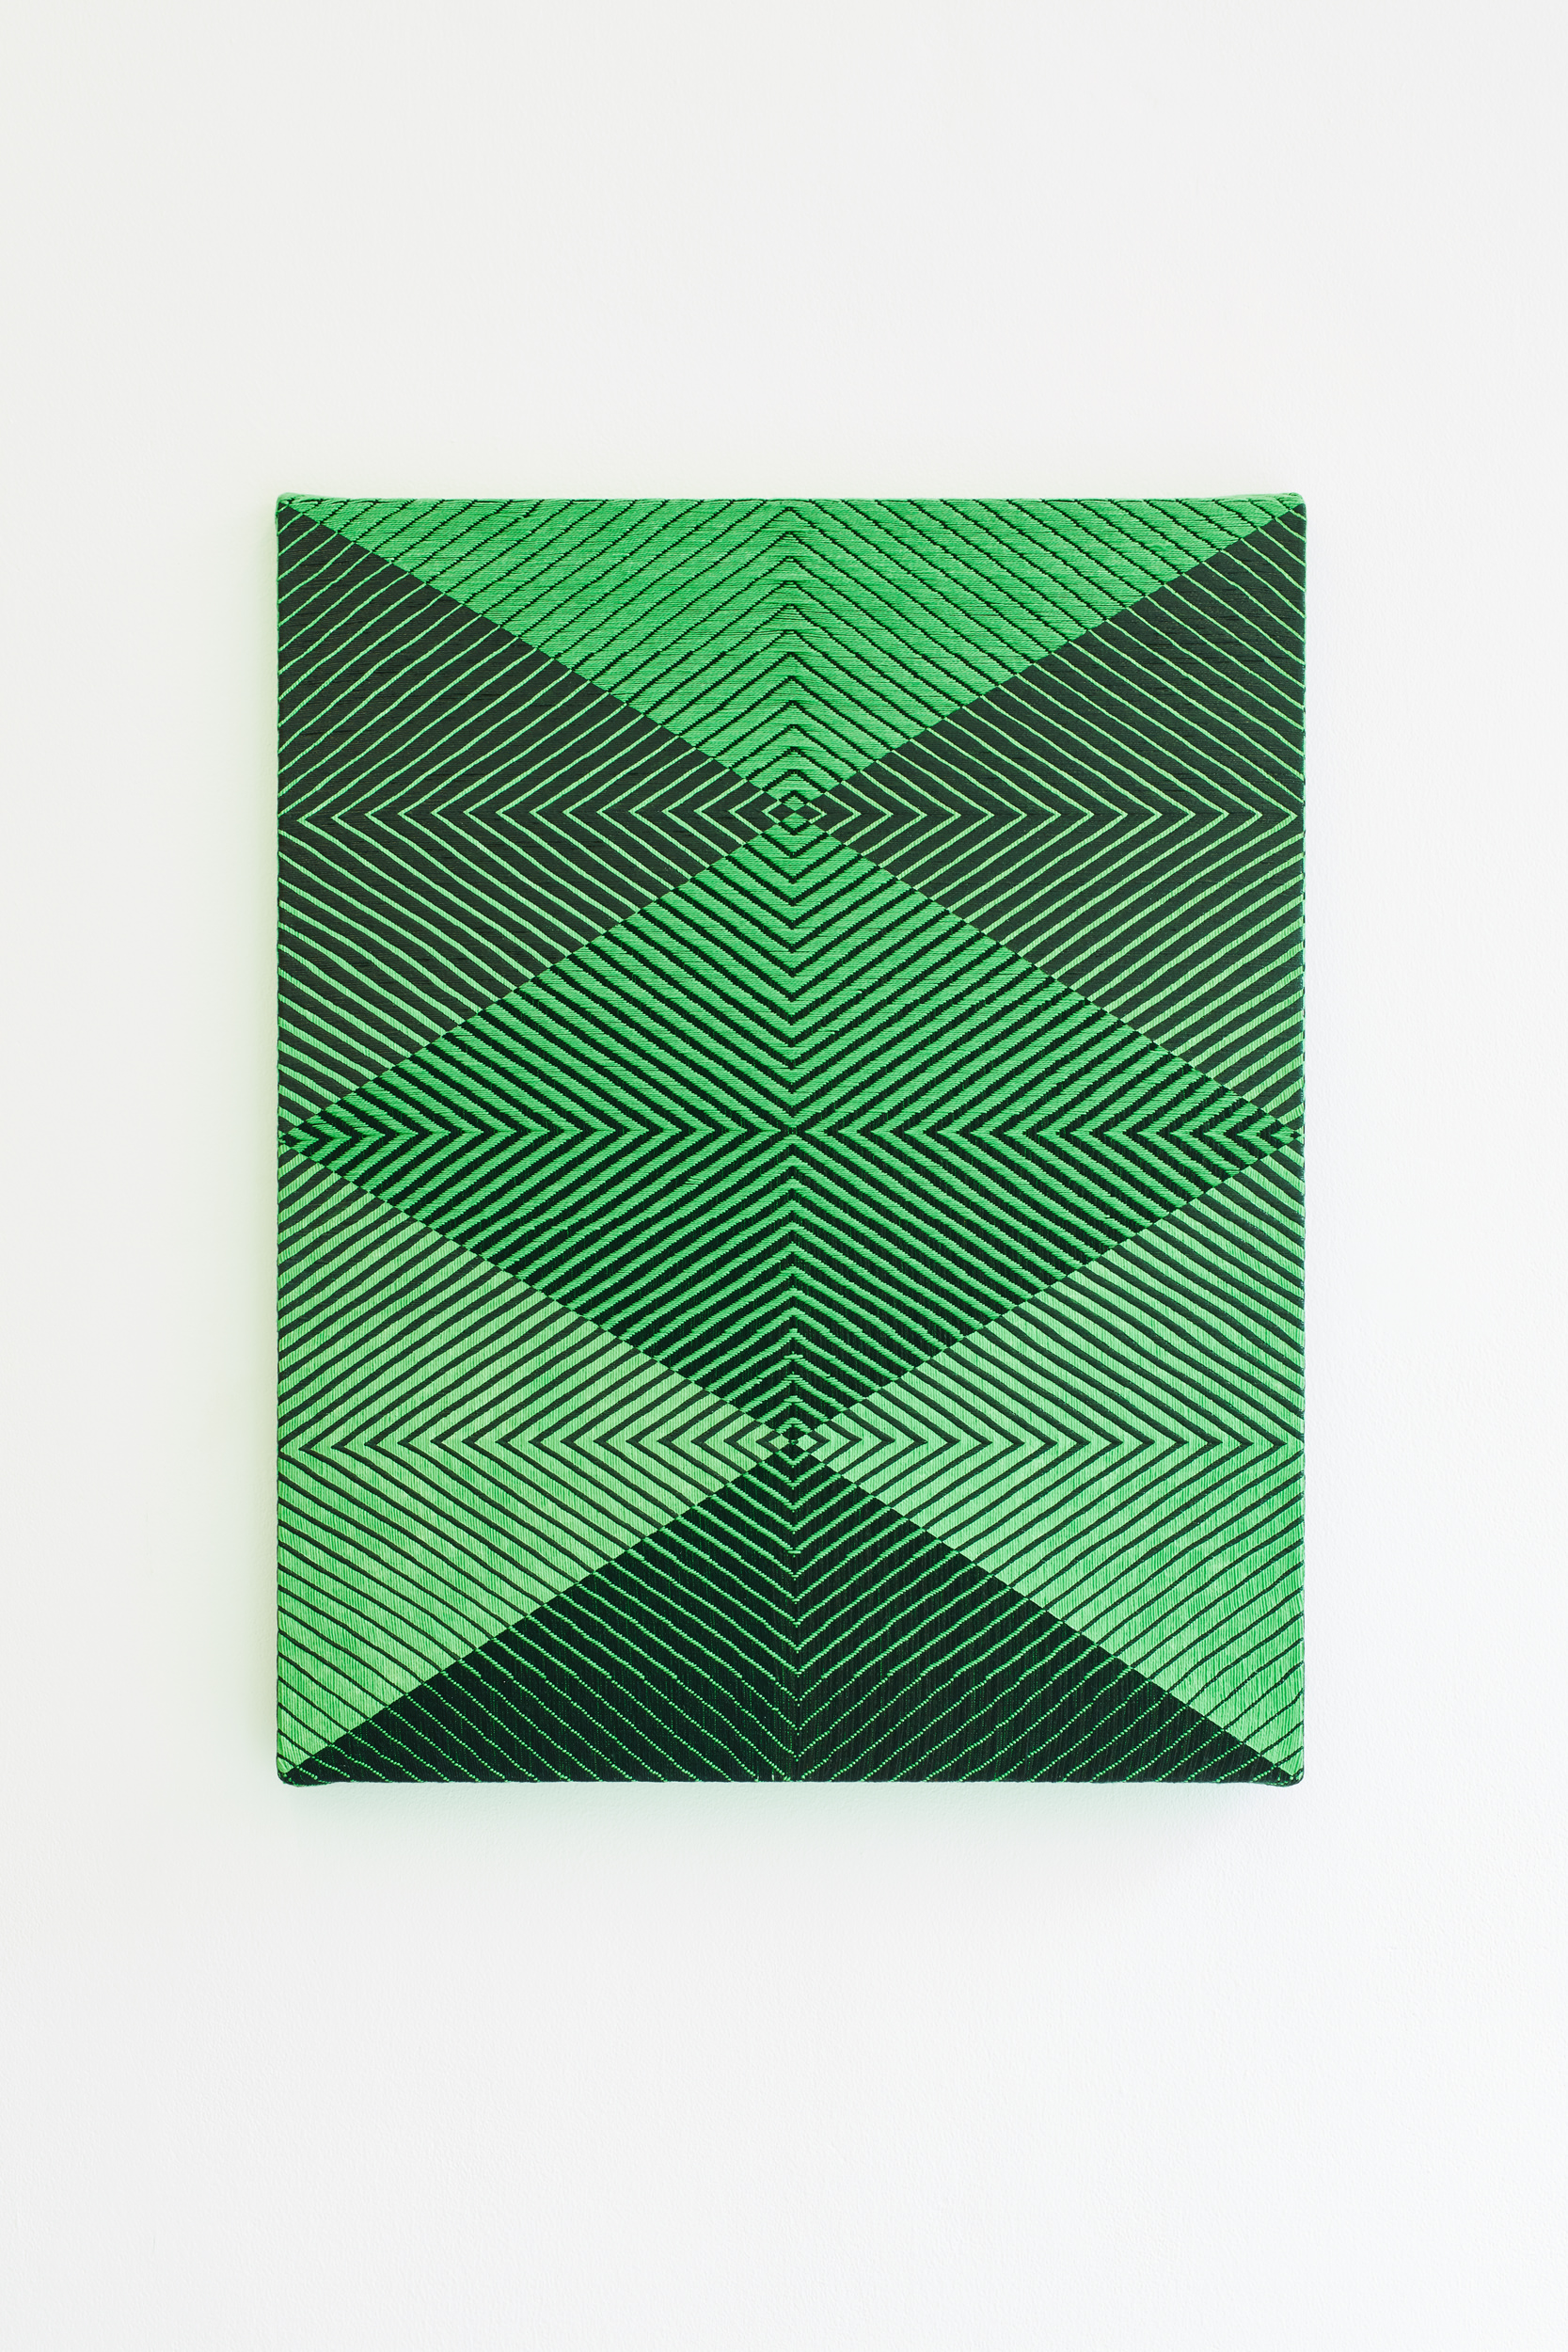 Samantha Bittman, Untitled, 2017, acrylic on hand-woven textile, 30×24 inc, inv. n. 2017-012